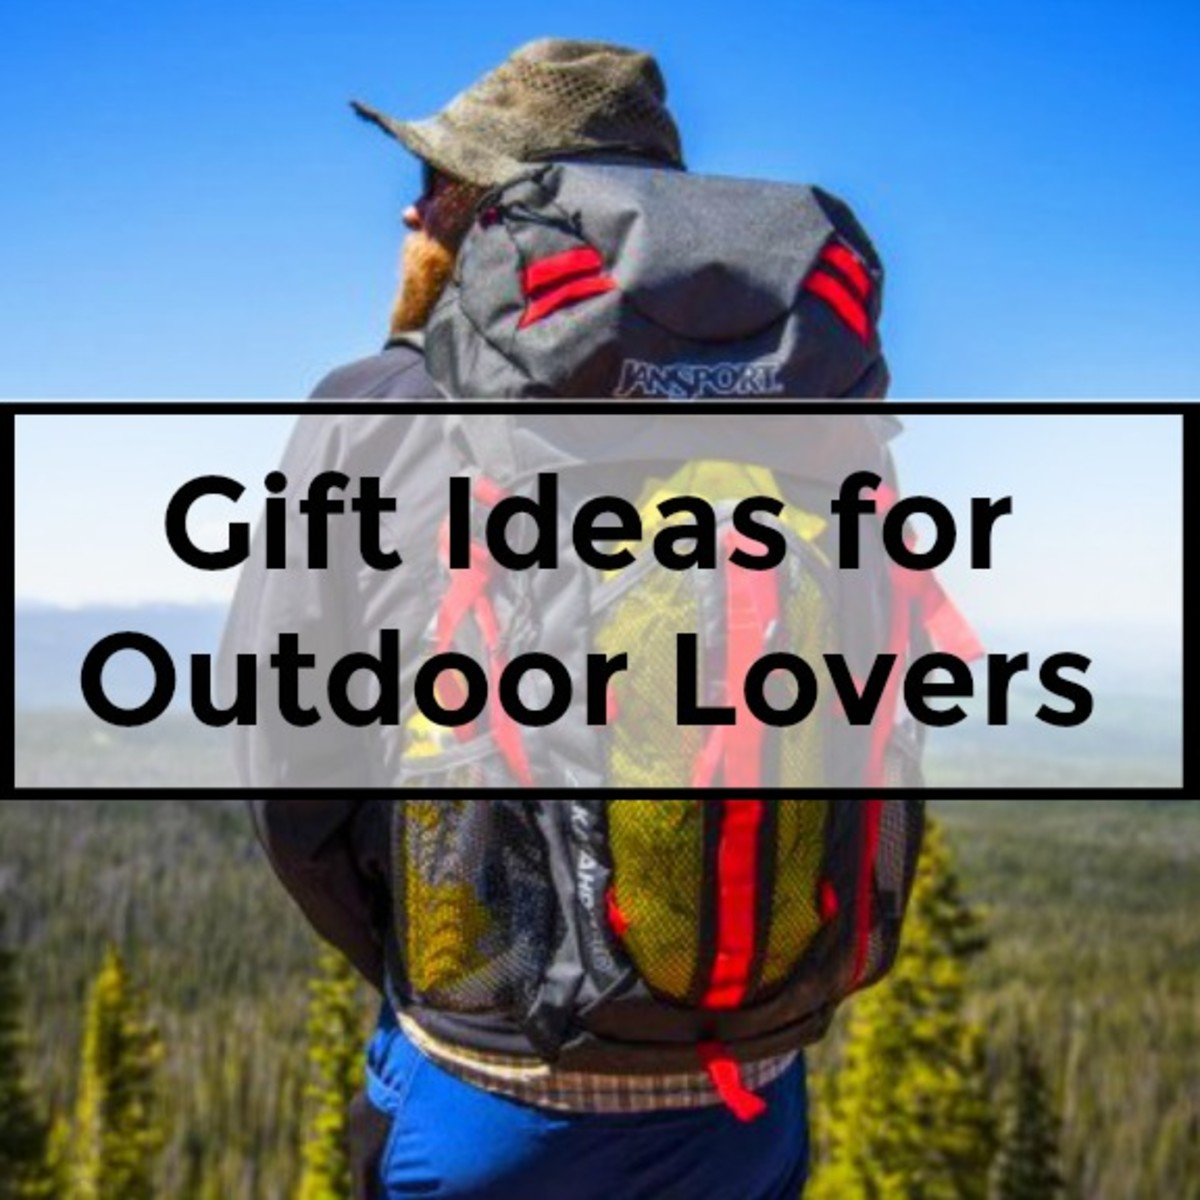 Gifts for Outdoor Lovers - Camping and Hiking Gifts and Stocking Stuffers